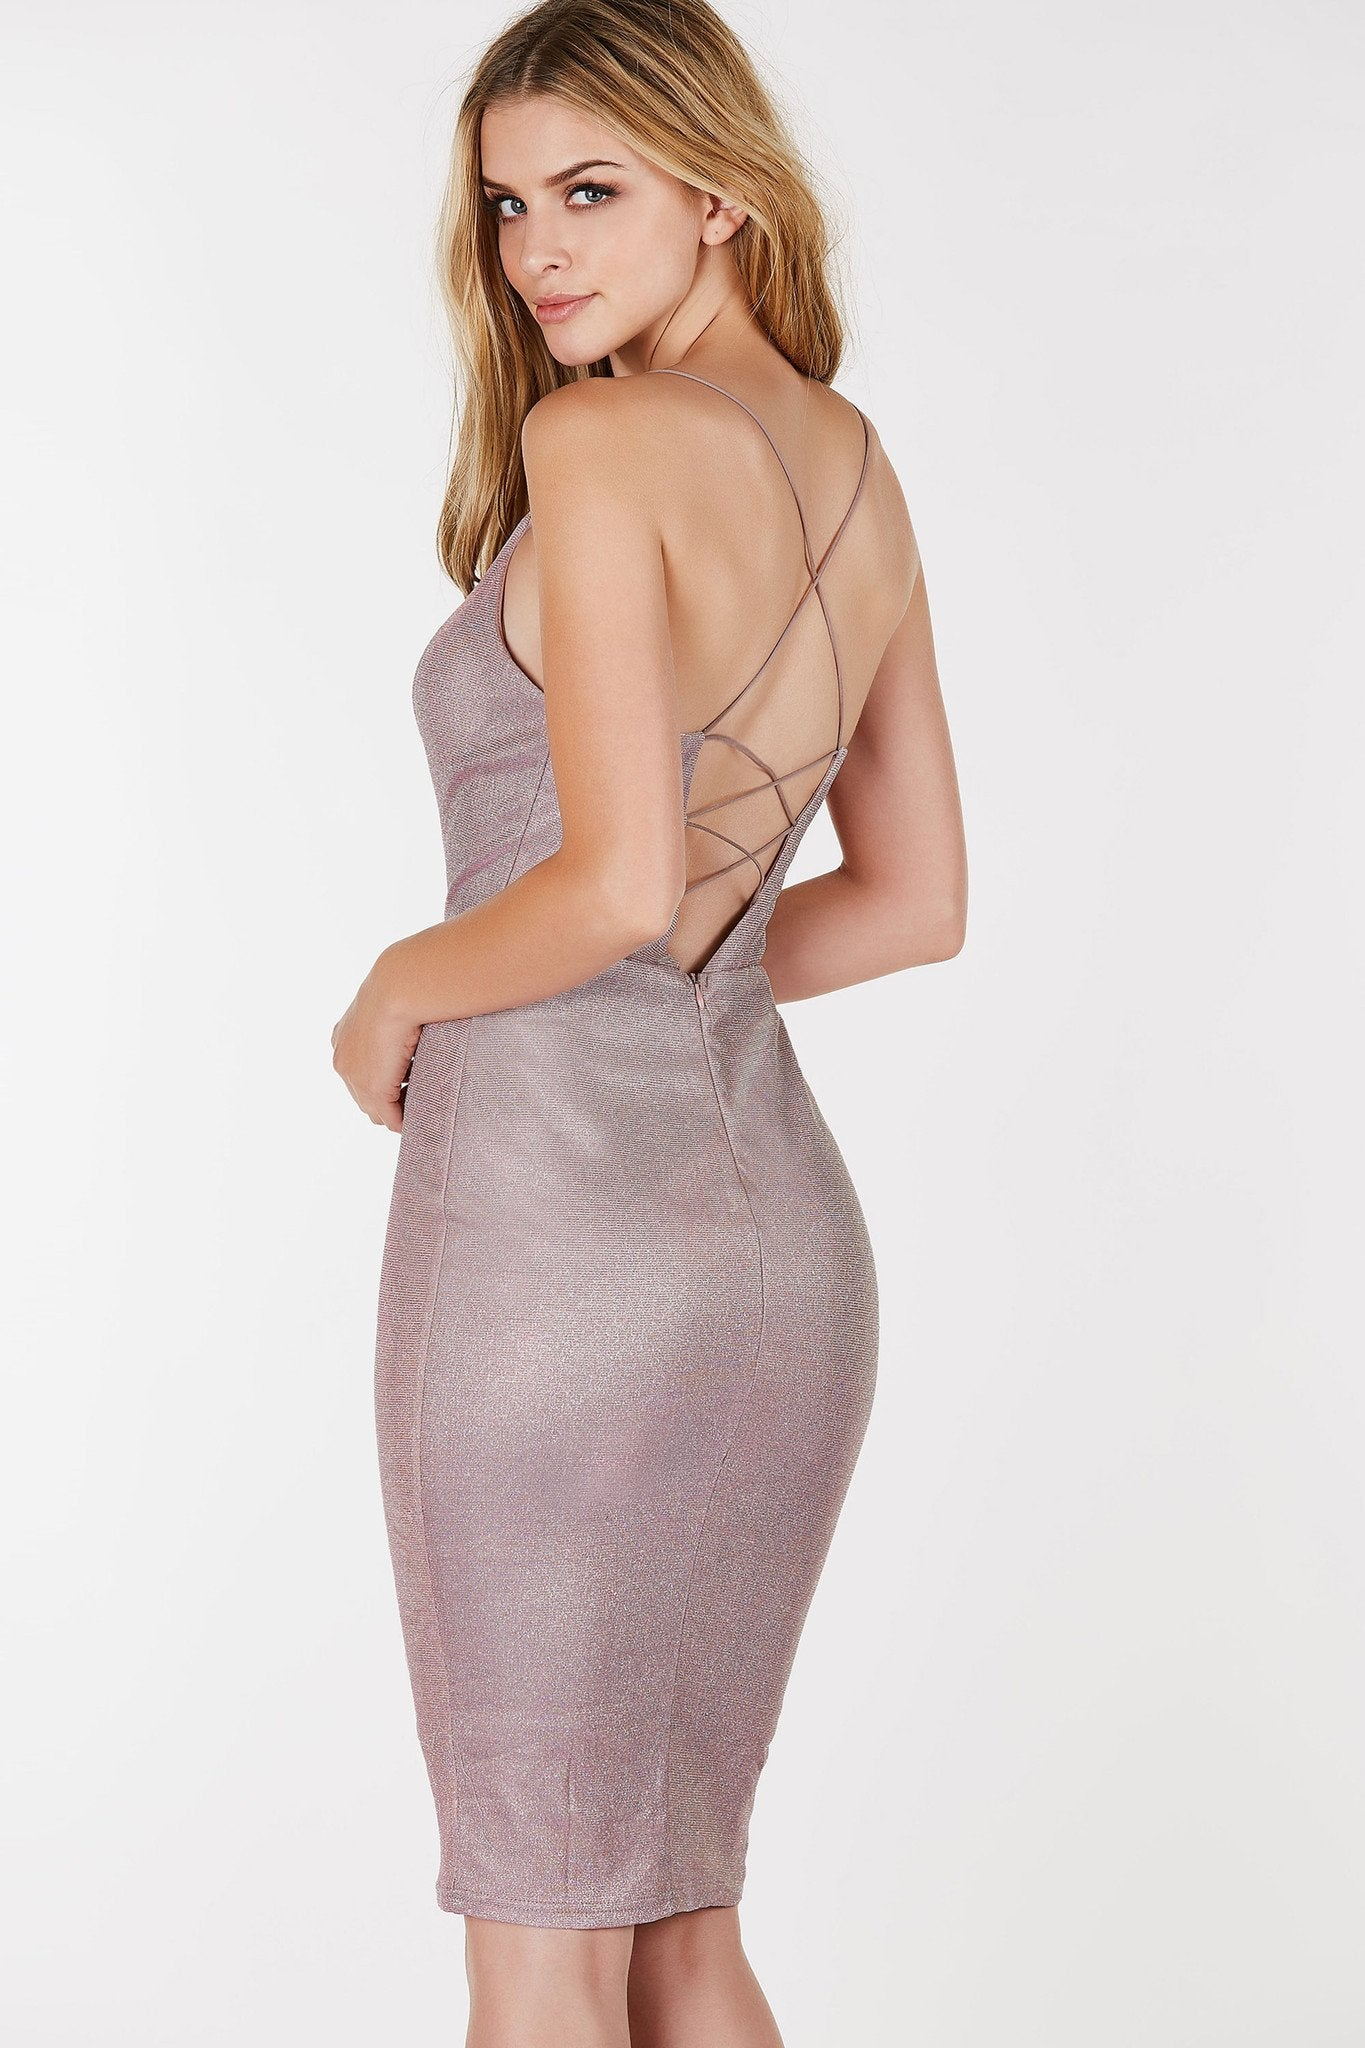 Slim fit midi dress with a deep neckline and plunging back. Strappy detailing with glitter finish.